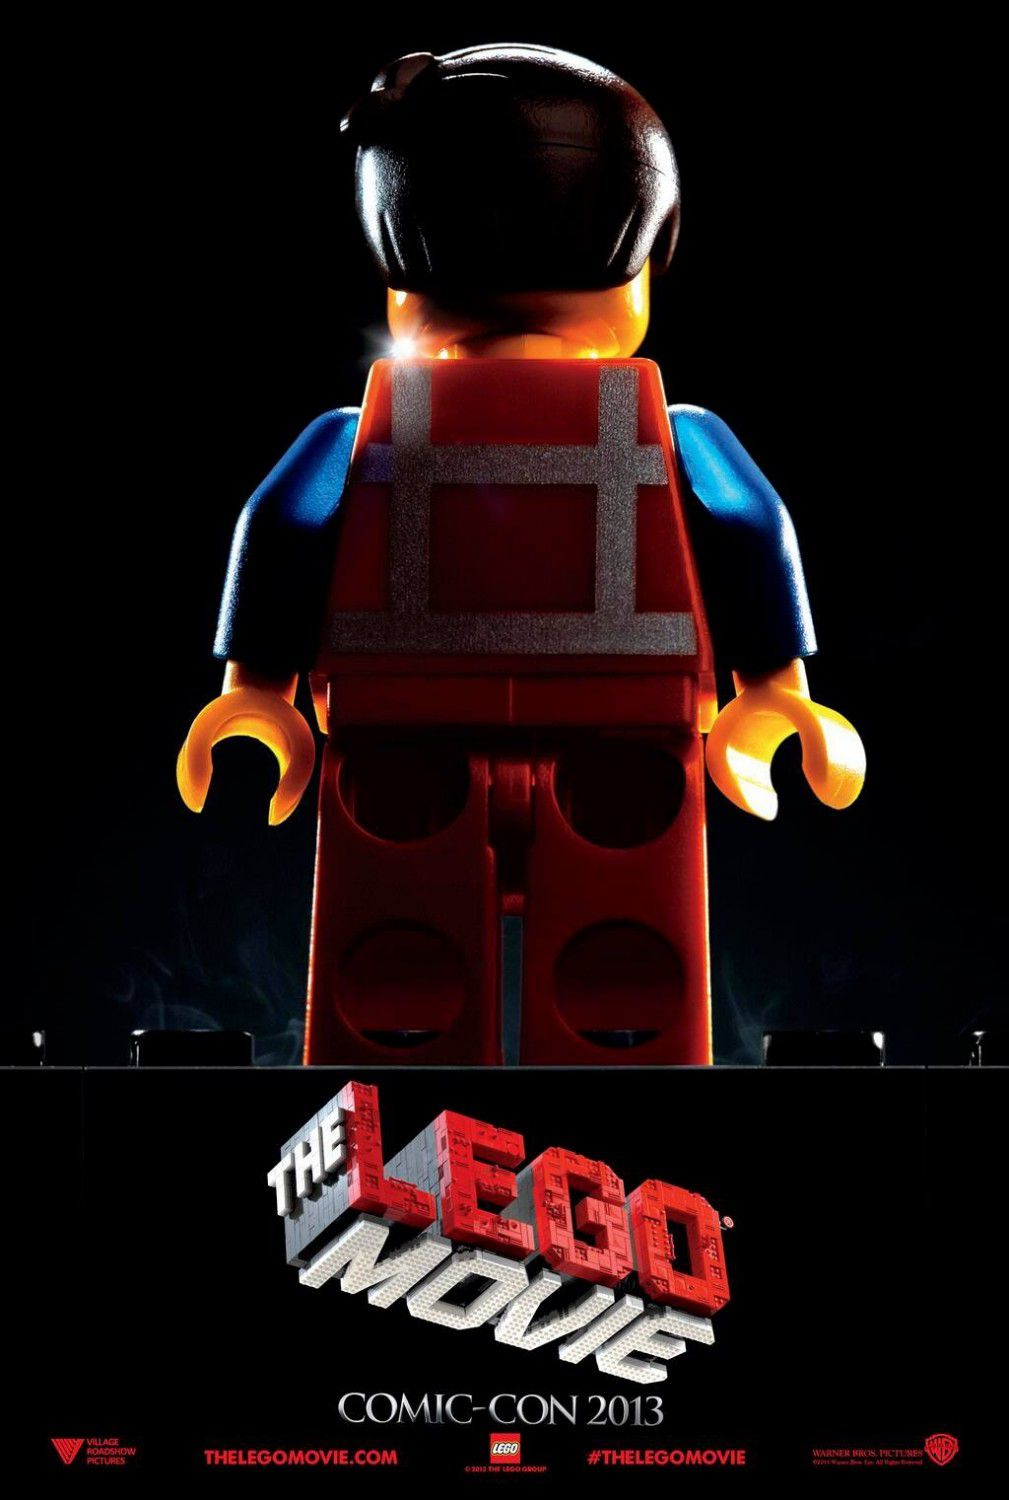 LEGO movie - Superman